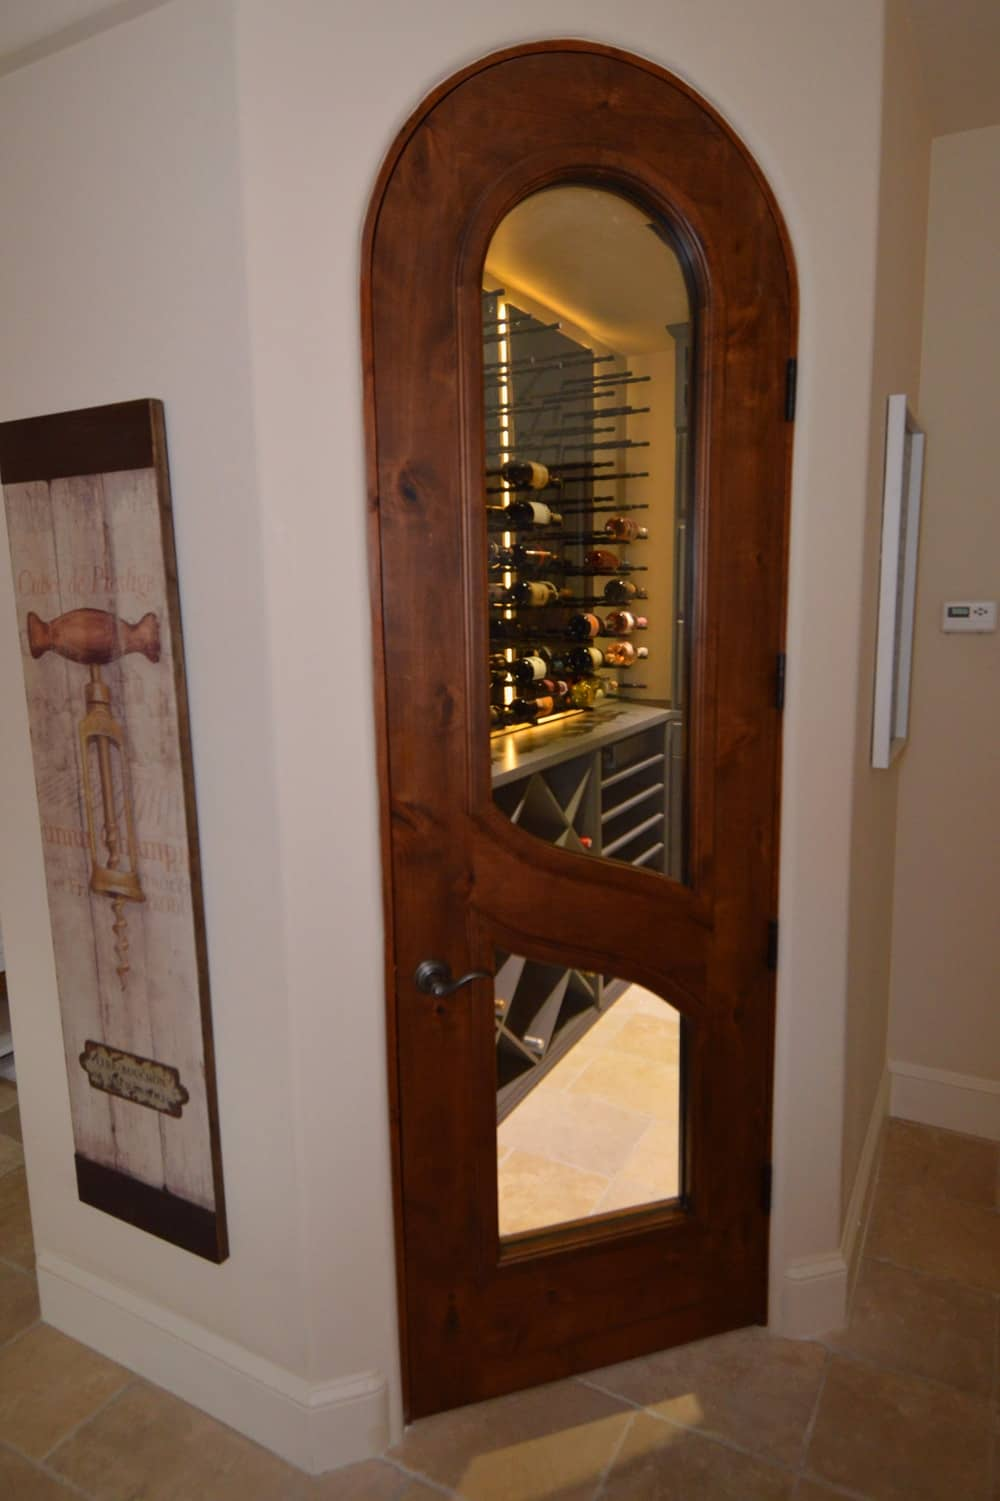 From outside you can see the interior of the wine cellar because of the glass panels embedded in the door.